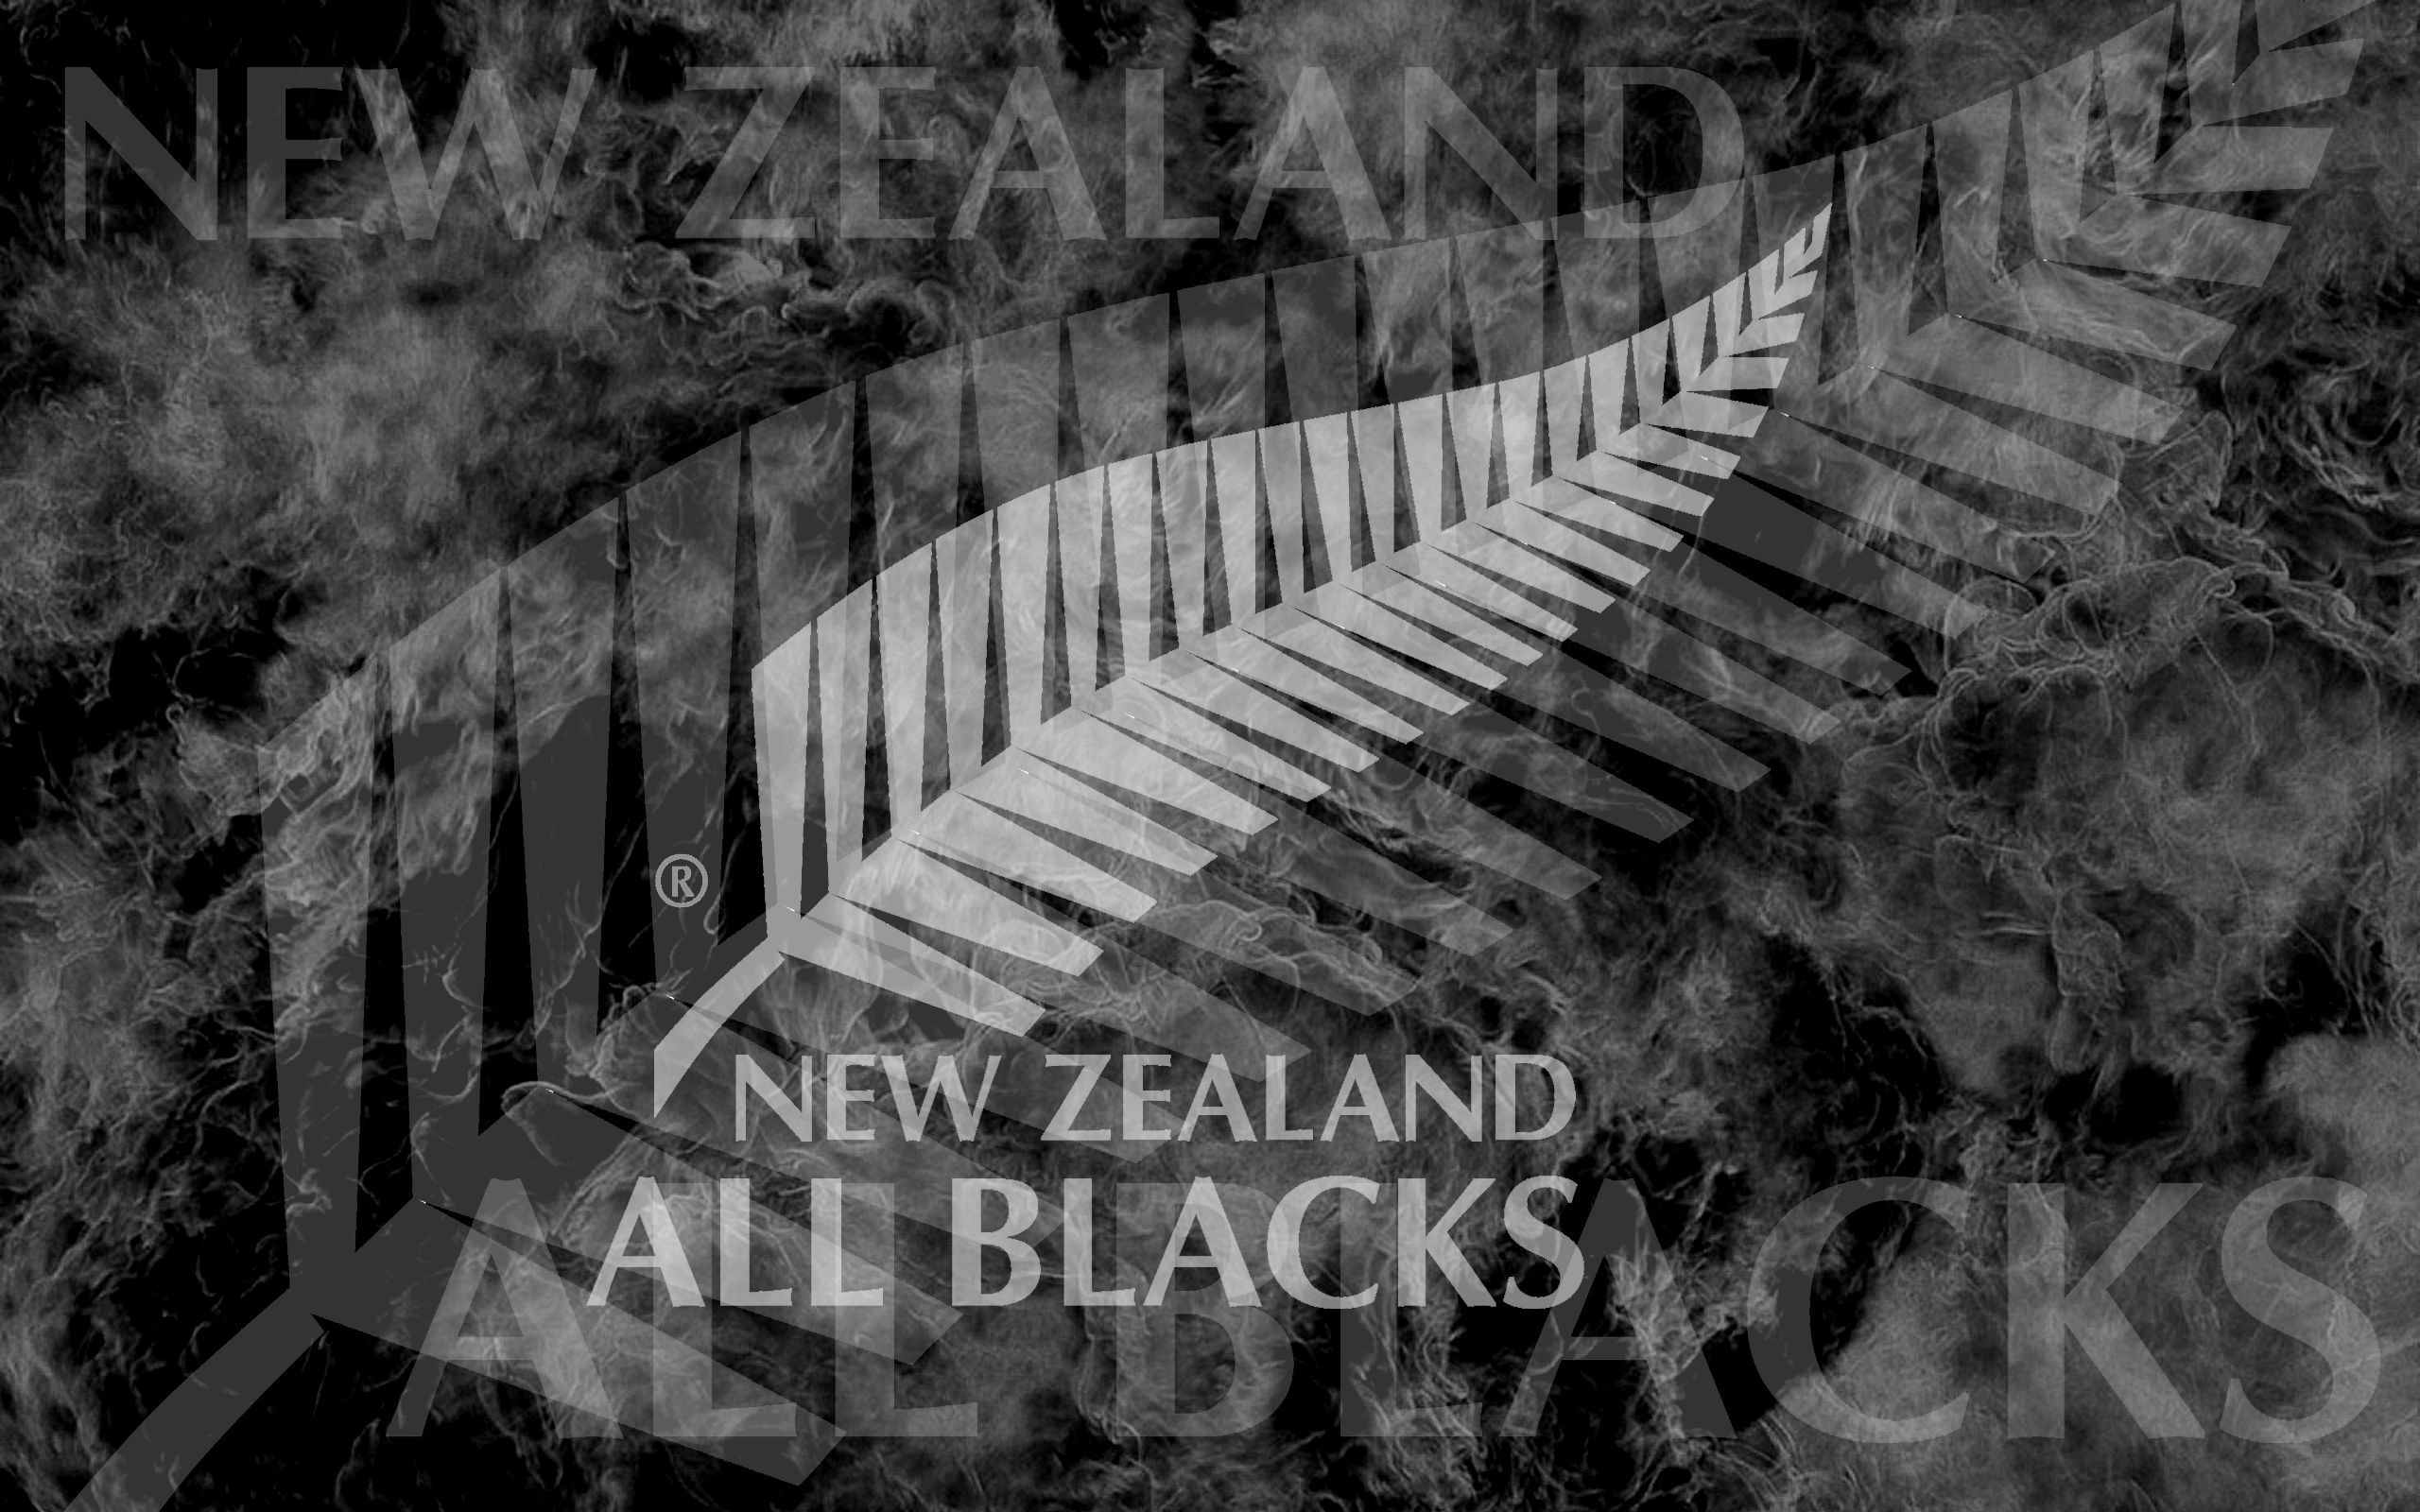 New Zealand All Blacks Flames Wallpaper By Sunnyboiiii All Blacks All Blacks Rugby Rugby Pictures